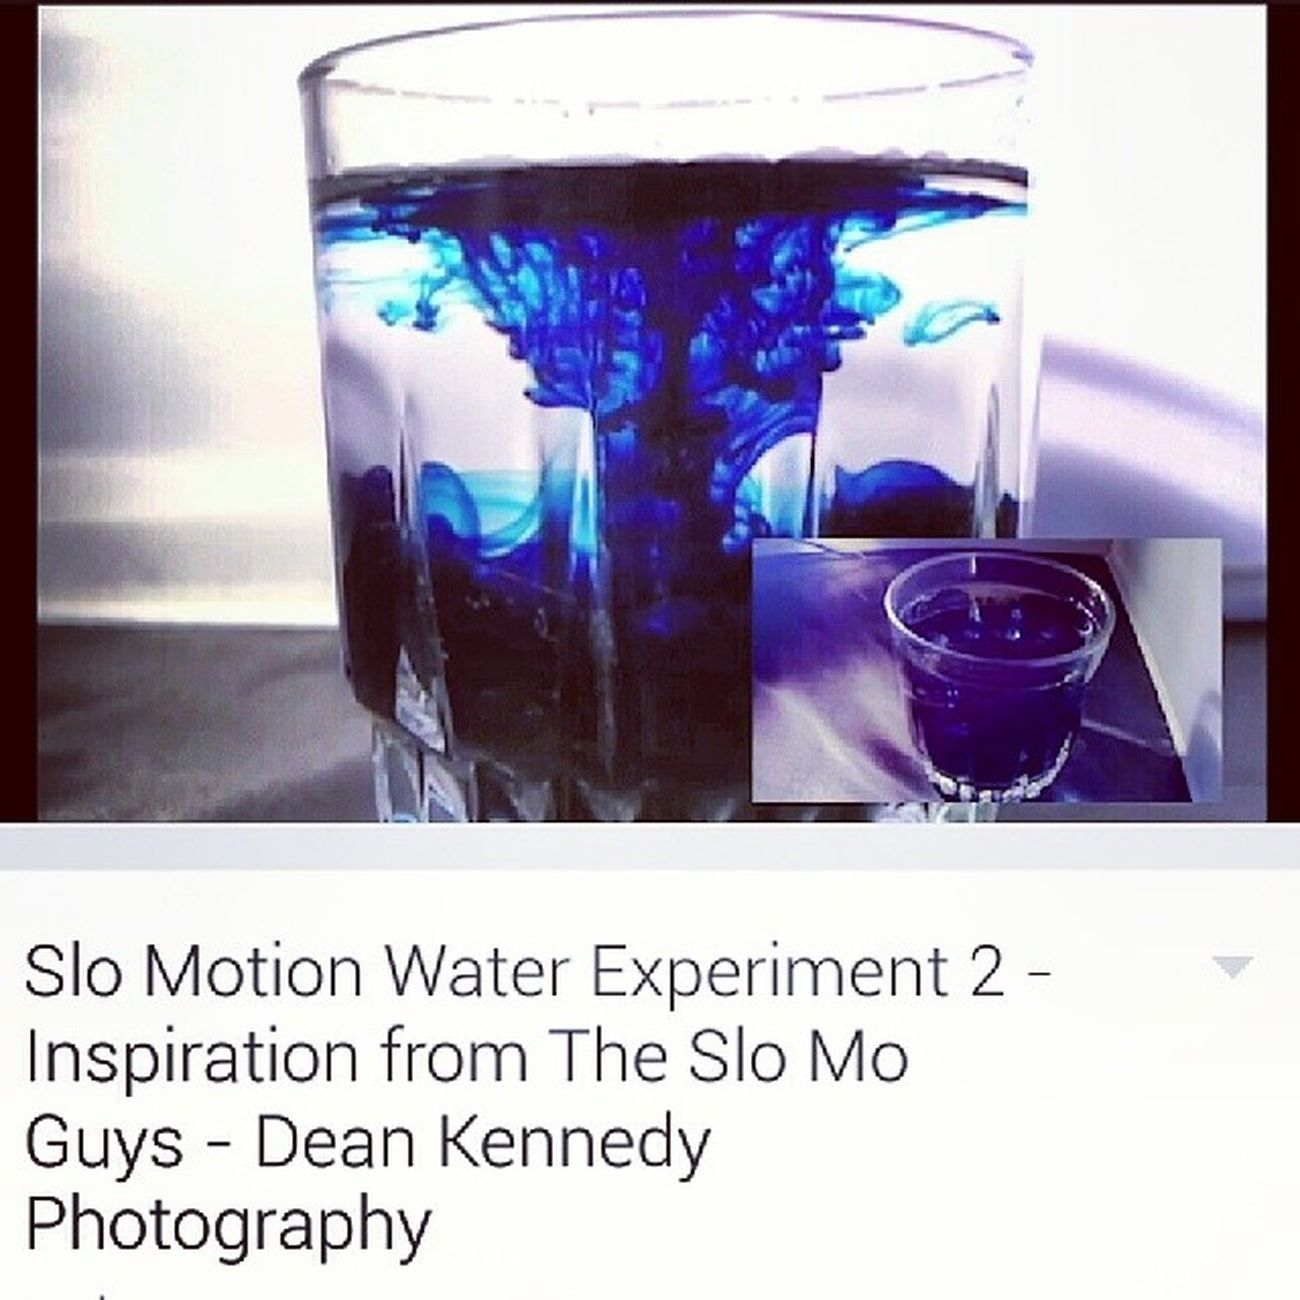 If you have not watched my Slowmotion Slomotion Water experiment Youtube video, head over to my Facebook page and take a look! www.fb.com/deankennedyphotography movement creative blue beauty light red green red colors water